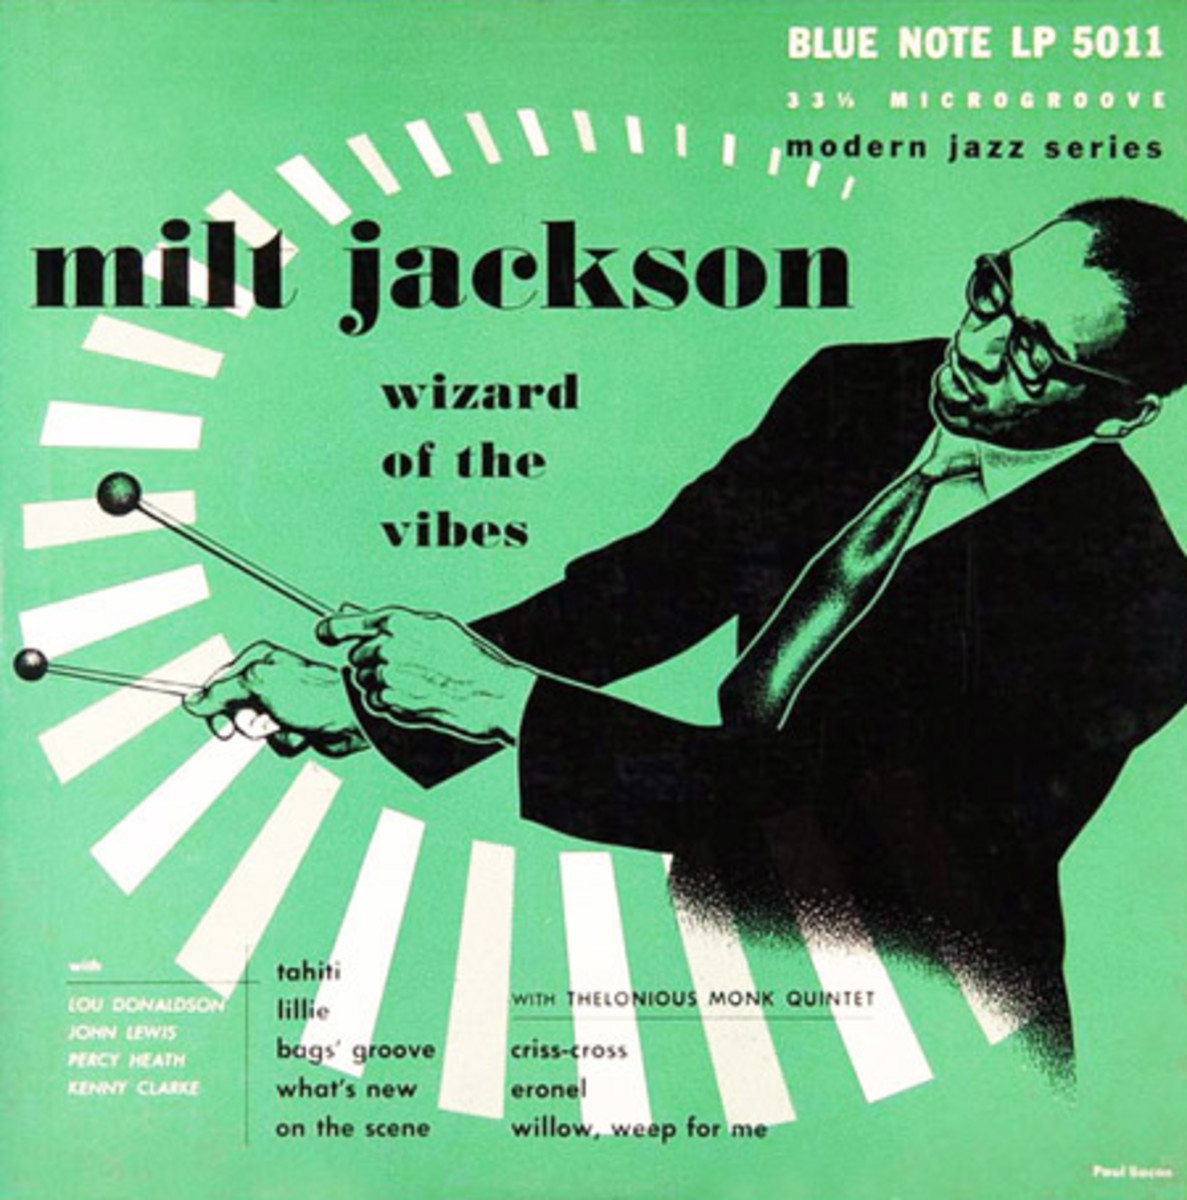 "Milt Jackson ""Wizard of the Vibes"" Blue Note Records BLP 5011 10"" LP Vinyl Record (1952) Album Cover Art & Design by Paul Bacon"